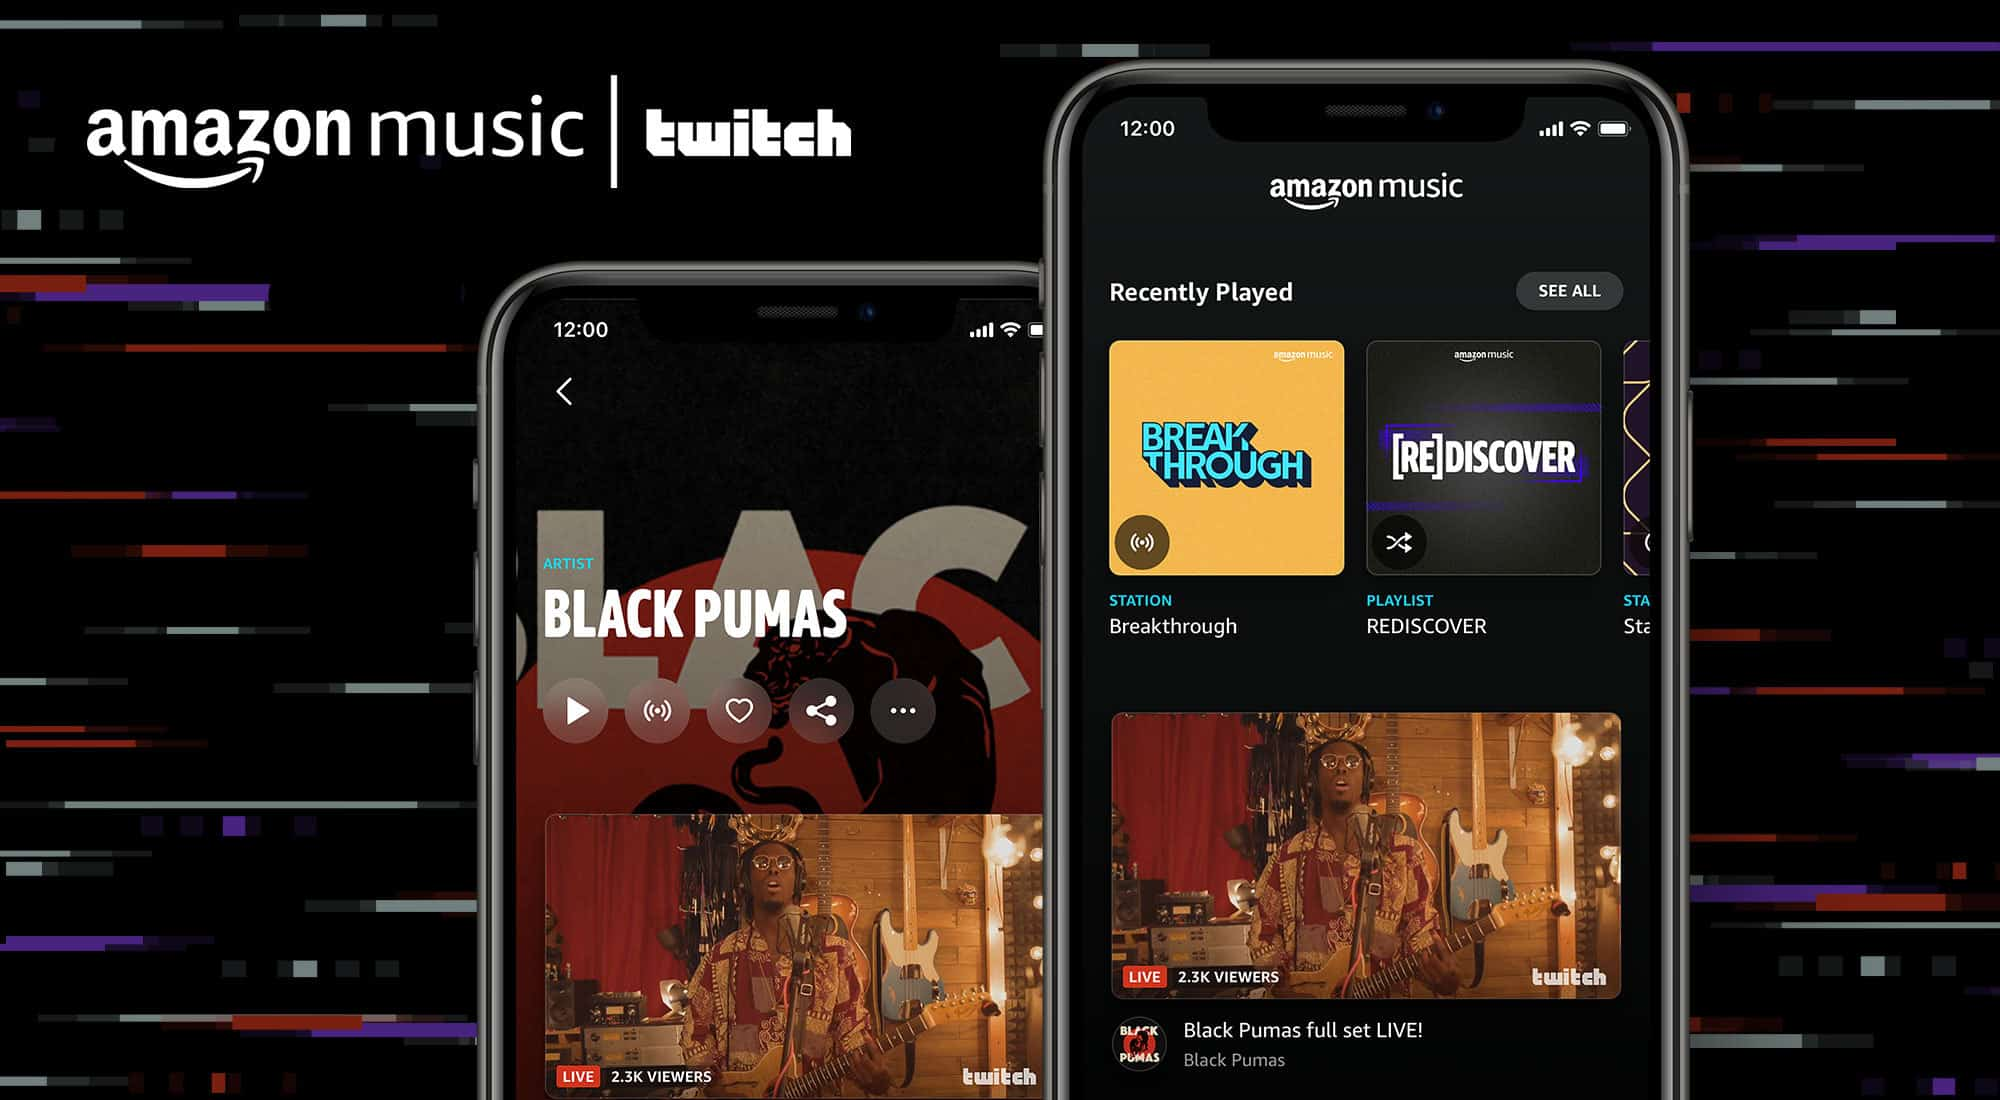 Amazon Music Twitch streaming